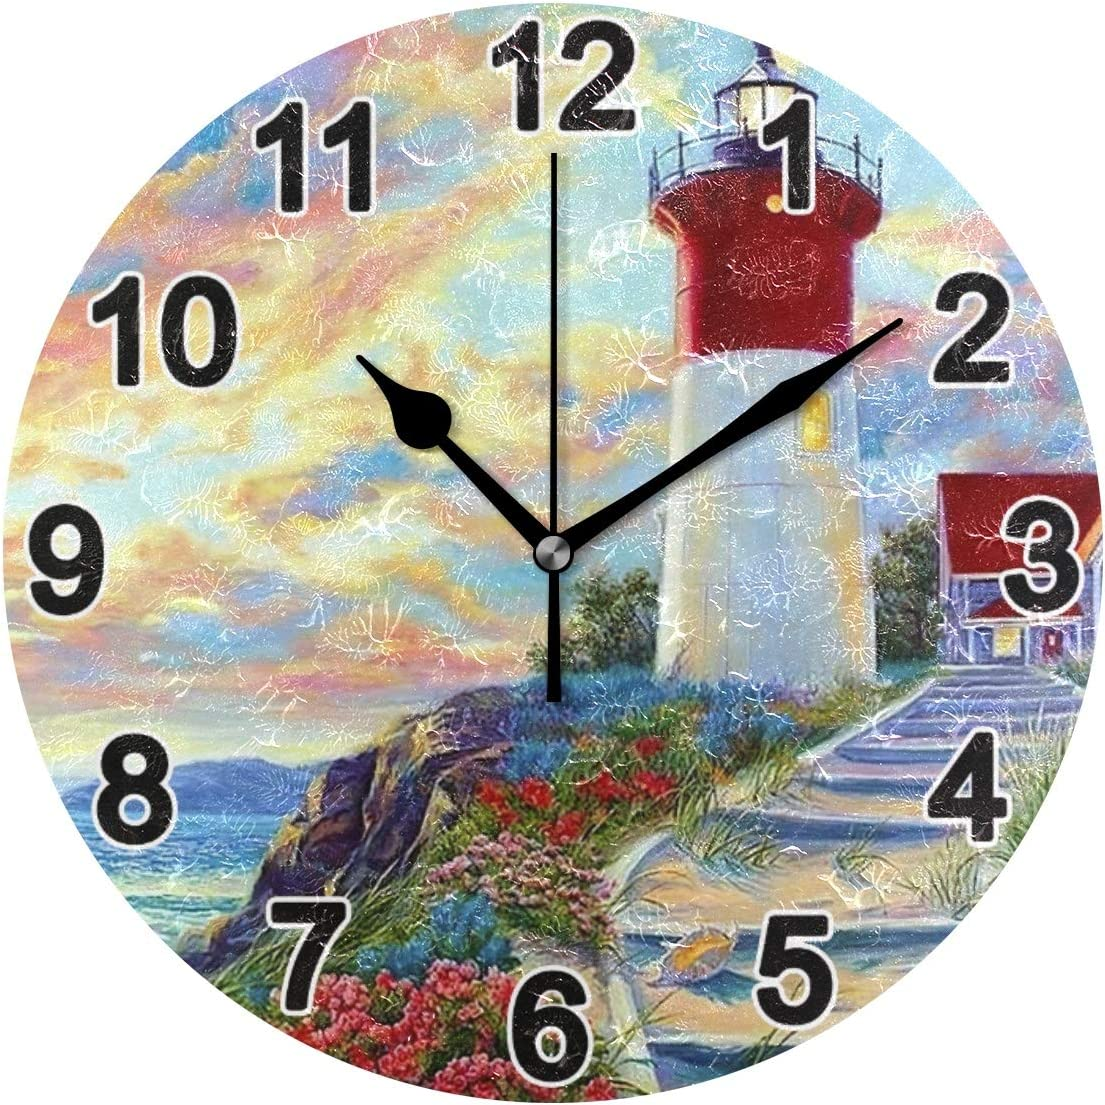 CHSIN Oil Painting Lighthouse Wall Clock Non Ticking for Girl Boy Bedroom 9.8 Inch Acrylic Clock for Bathroom Kitchen Living Room Office School 2120008